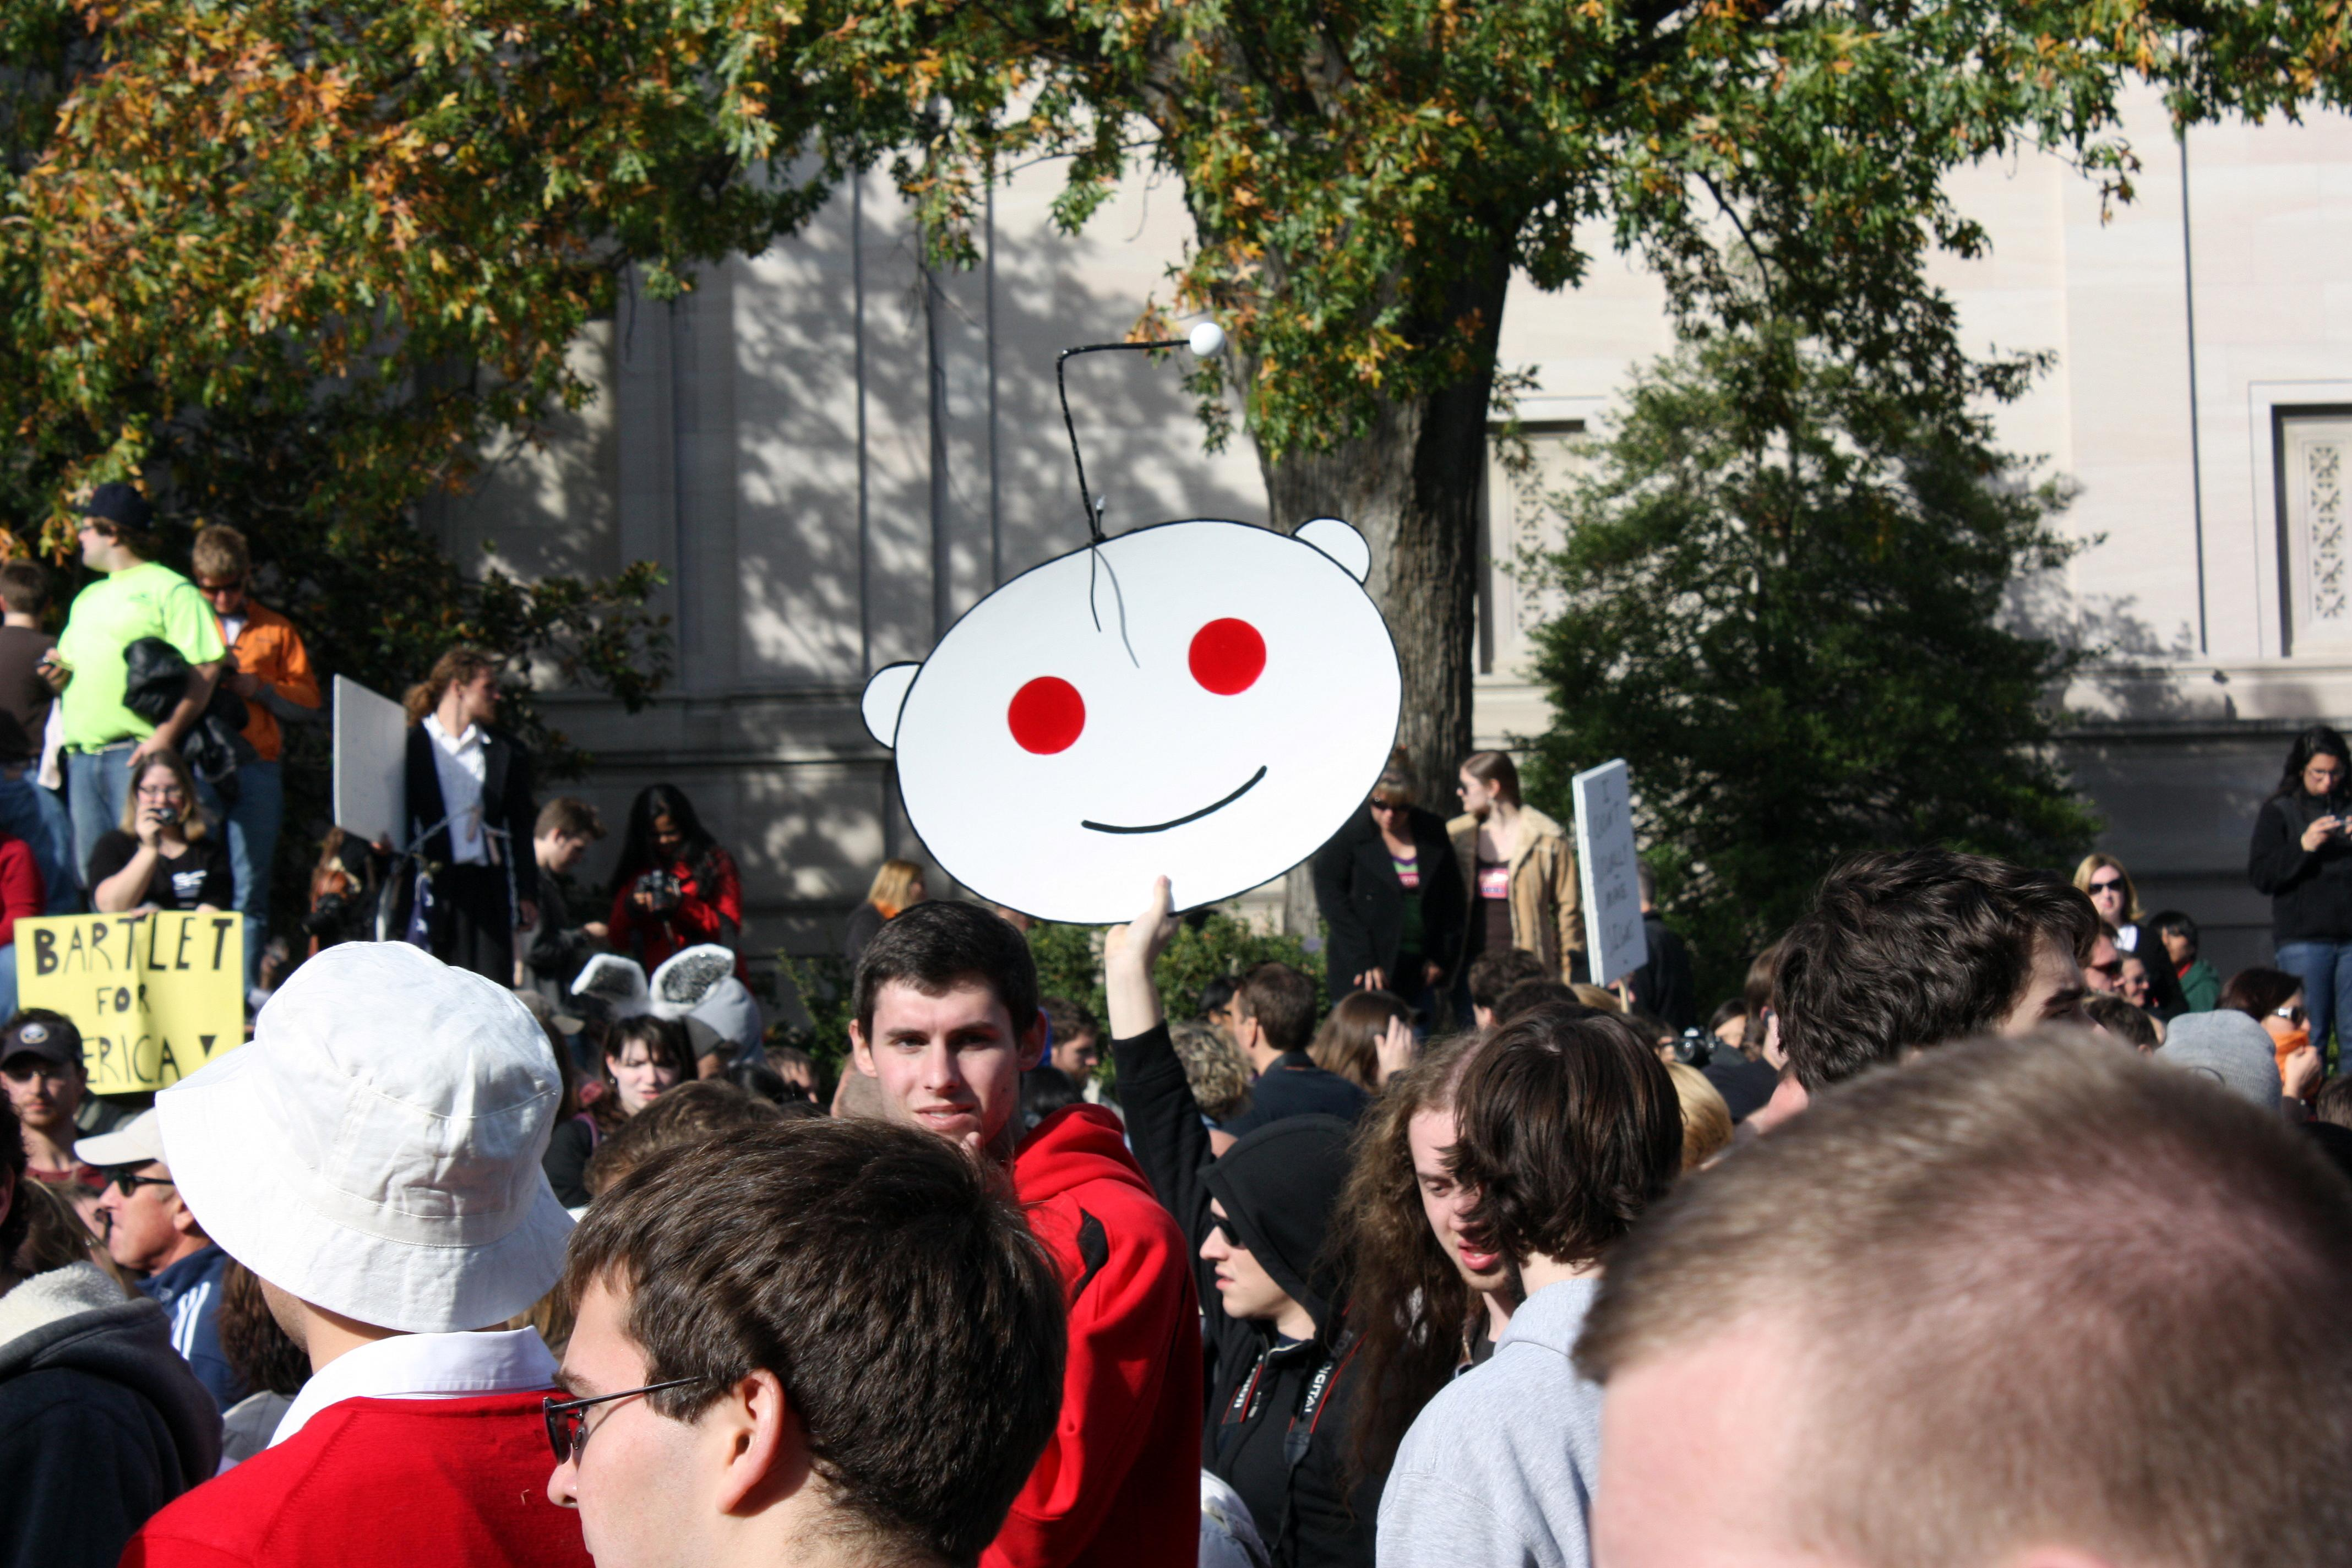 Reddit CEO Apologizes For Trolling While Cracking Down On Trolls